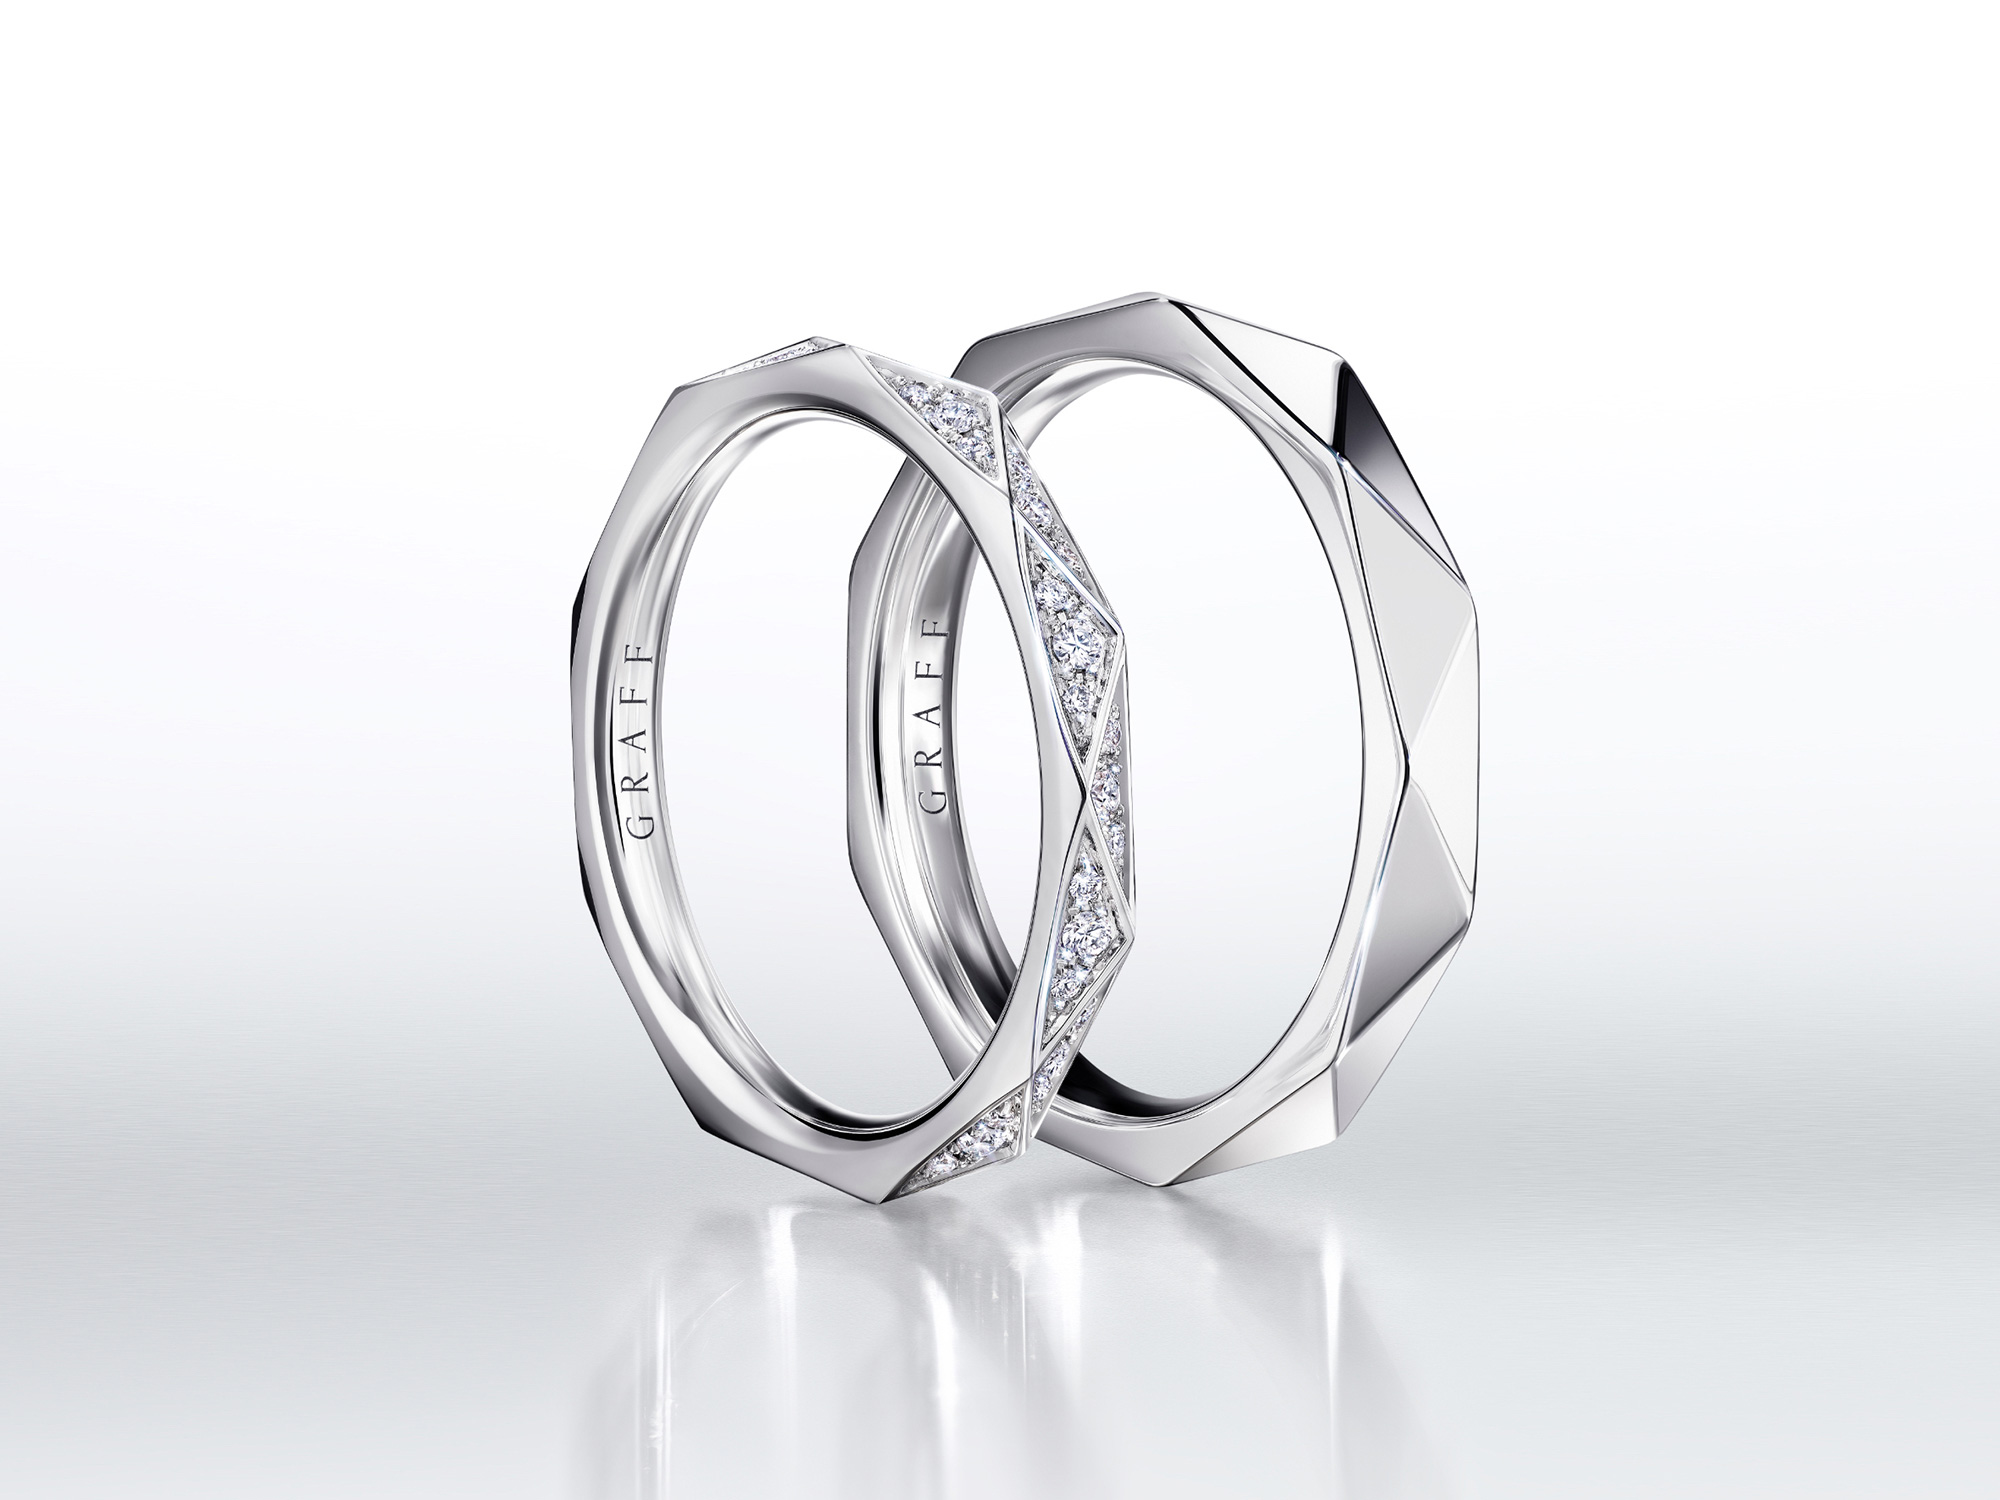 Pave diamond and plain Laurence Graff Signature bands in white gold